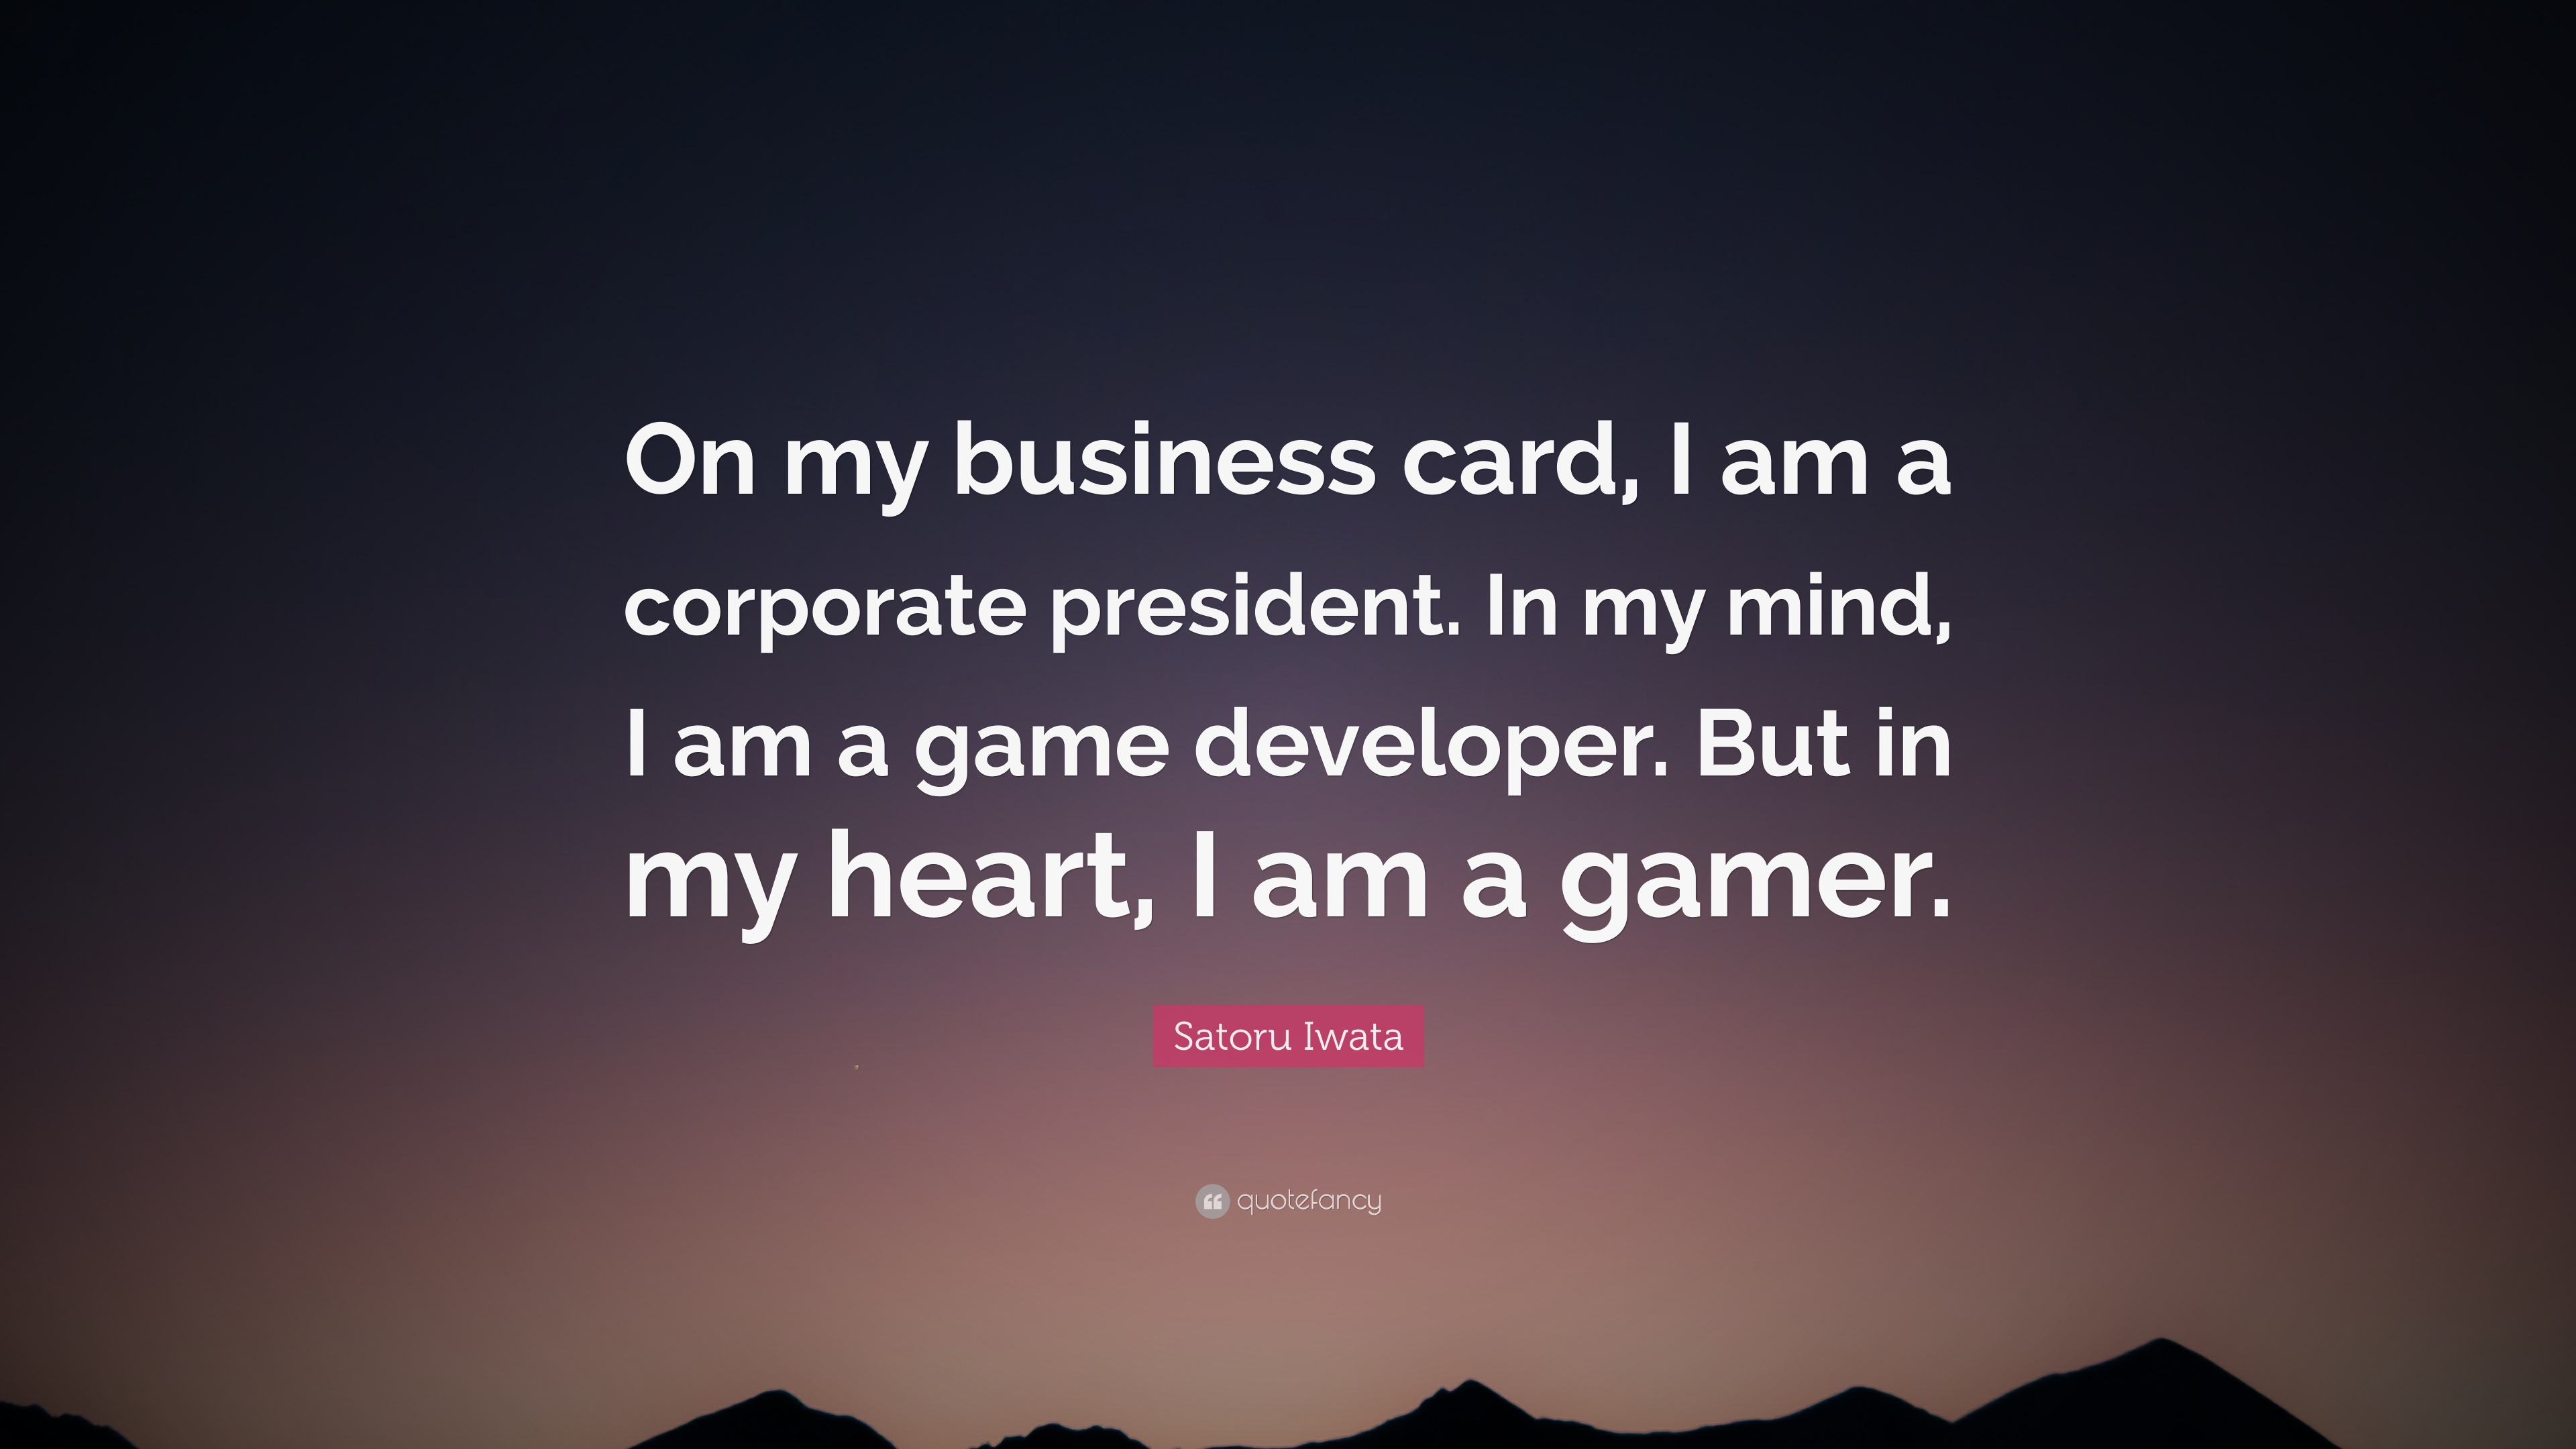 Satoru iwata quote on my business card i am a corporate satoru iwata quote on my business card i am a corporate president magicingreecefo Image collections